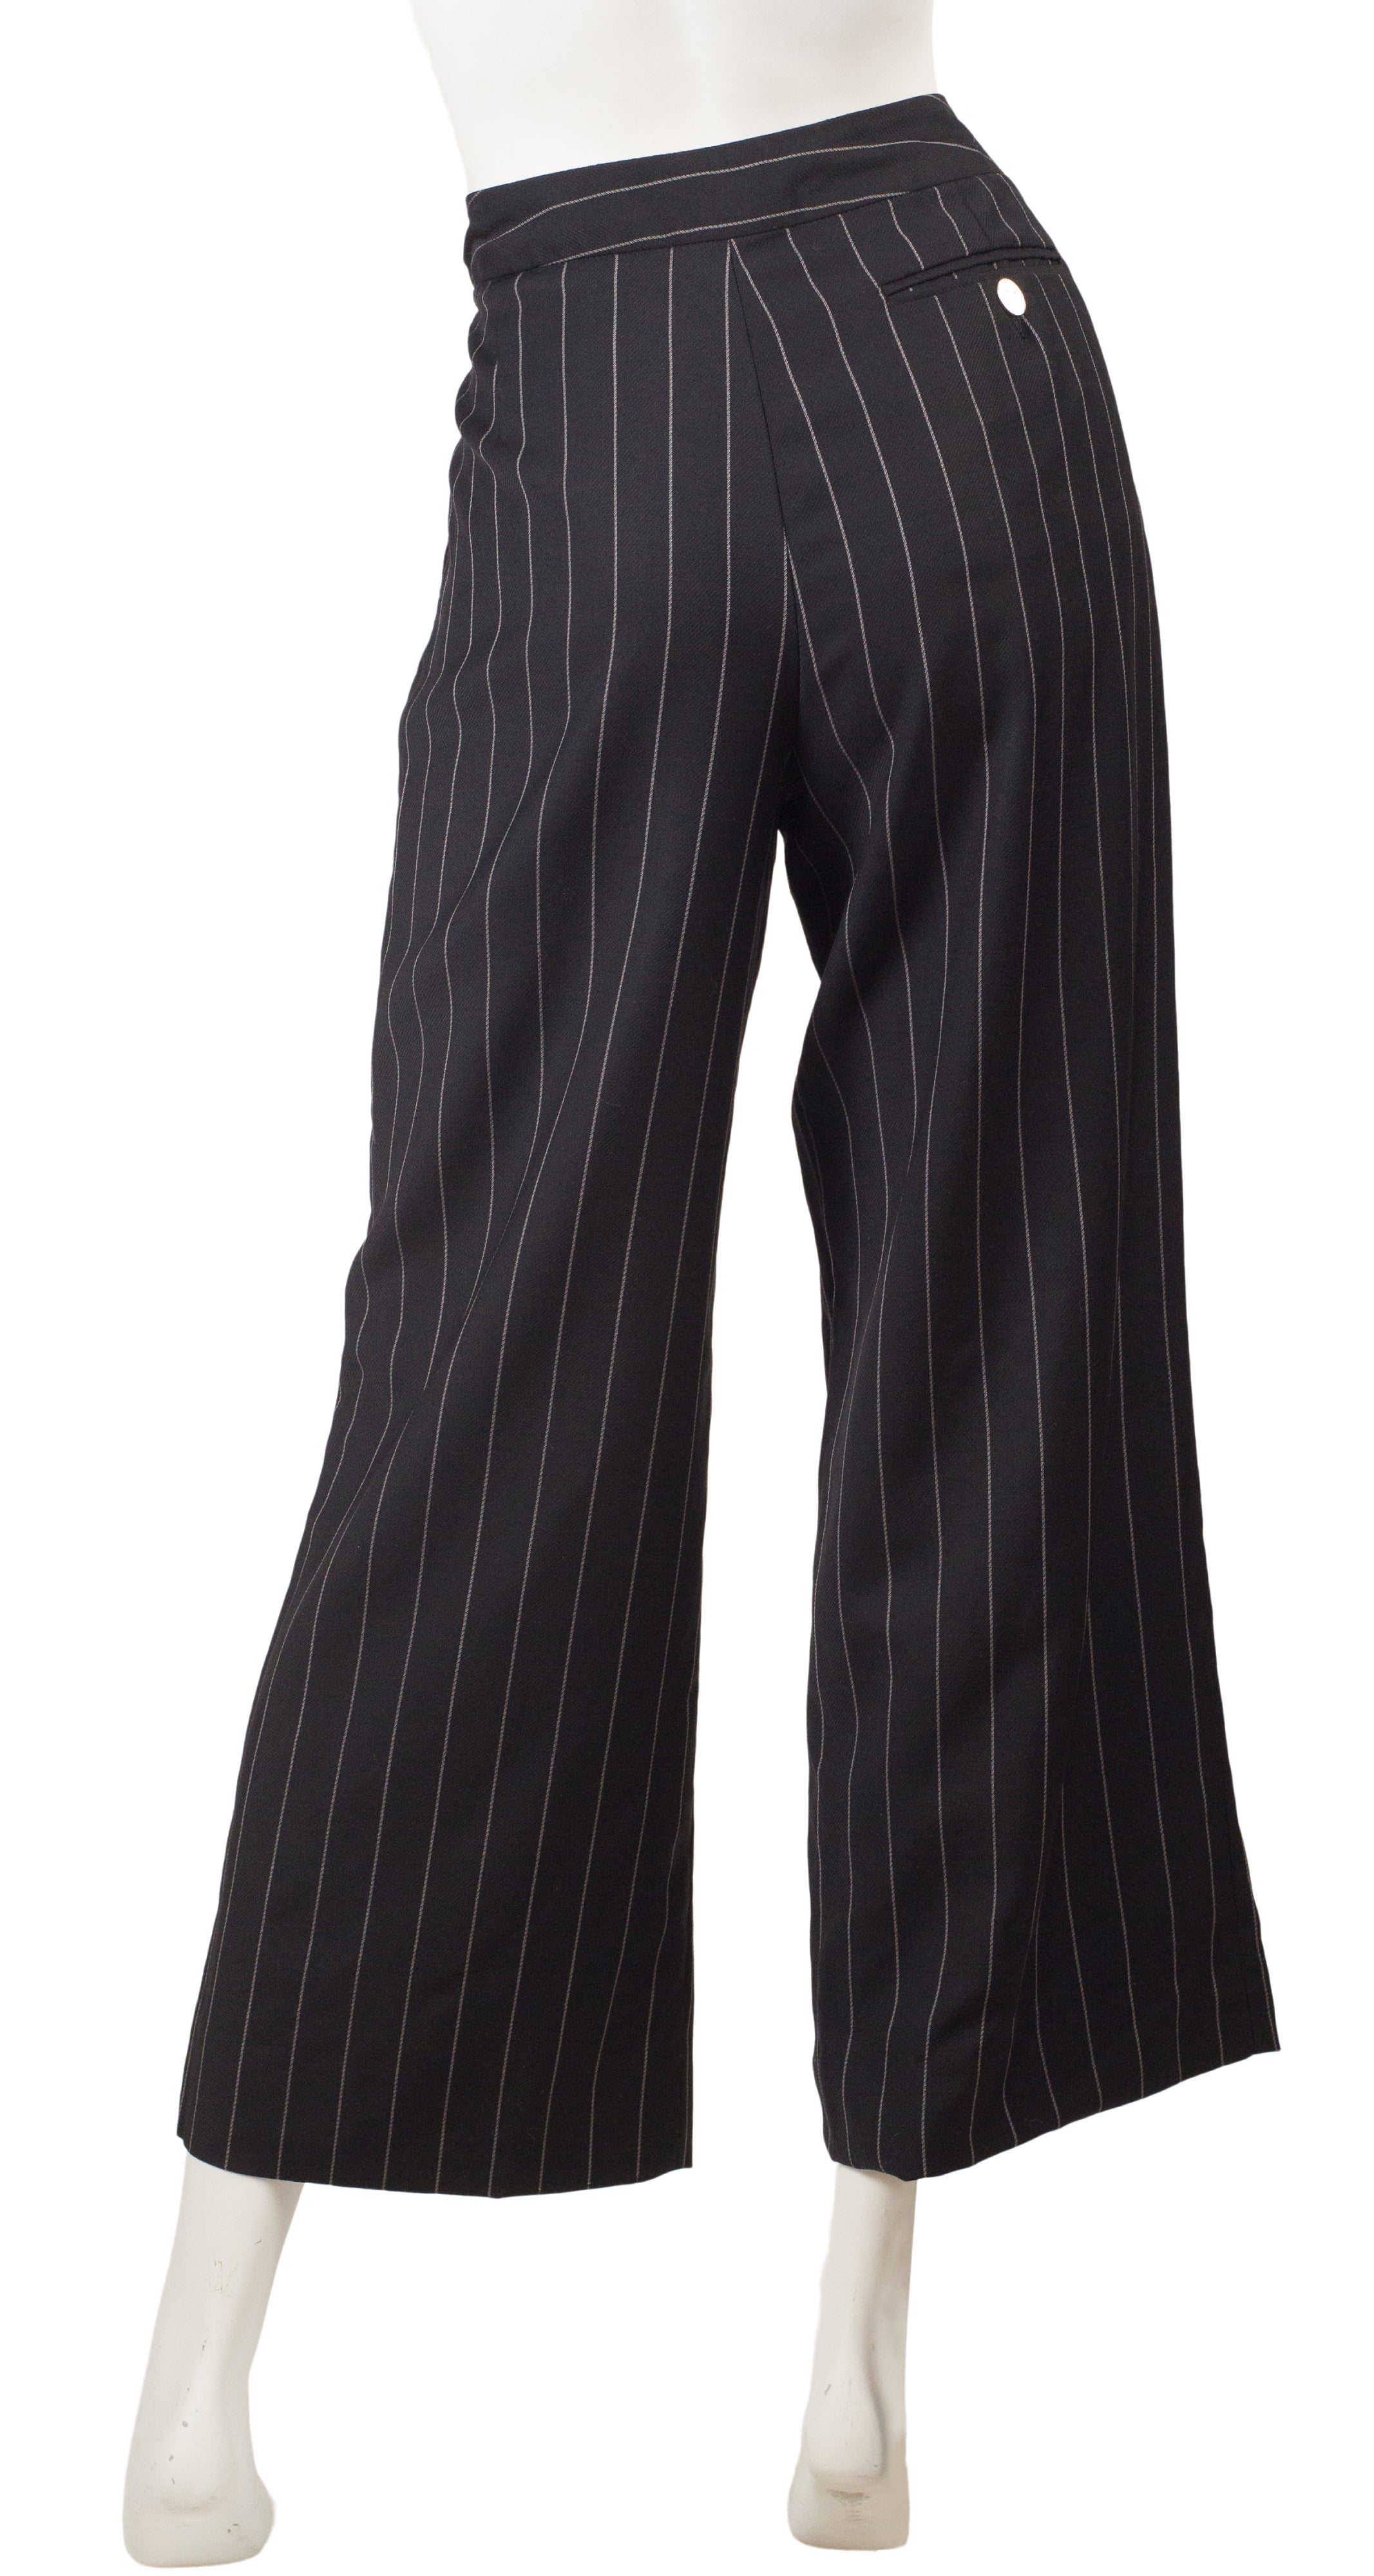 2000s Red Label Pinstripe Black Wool Wide-Leg Trousers